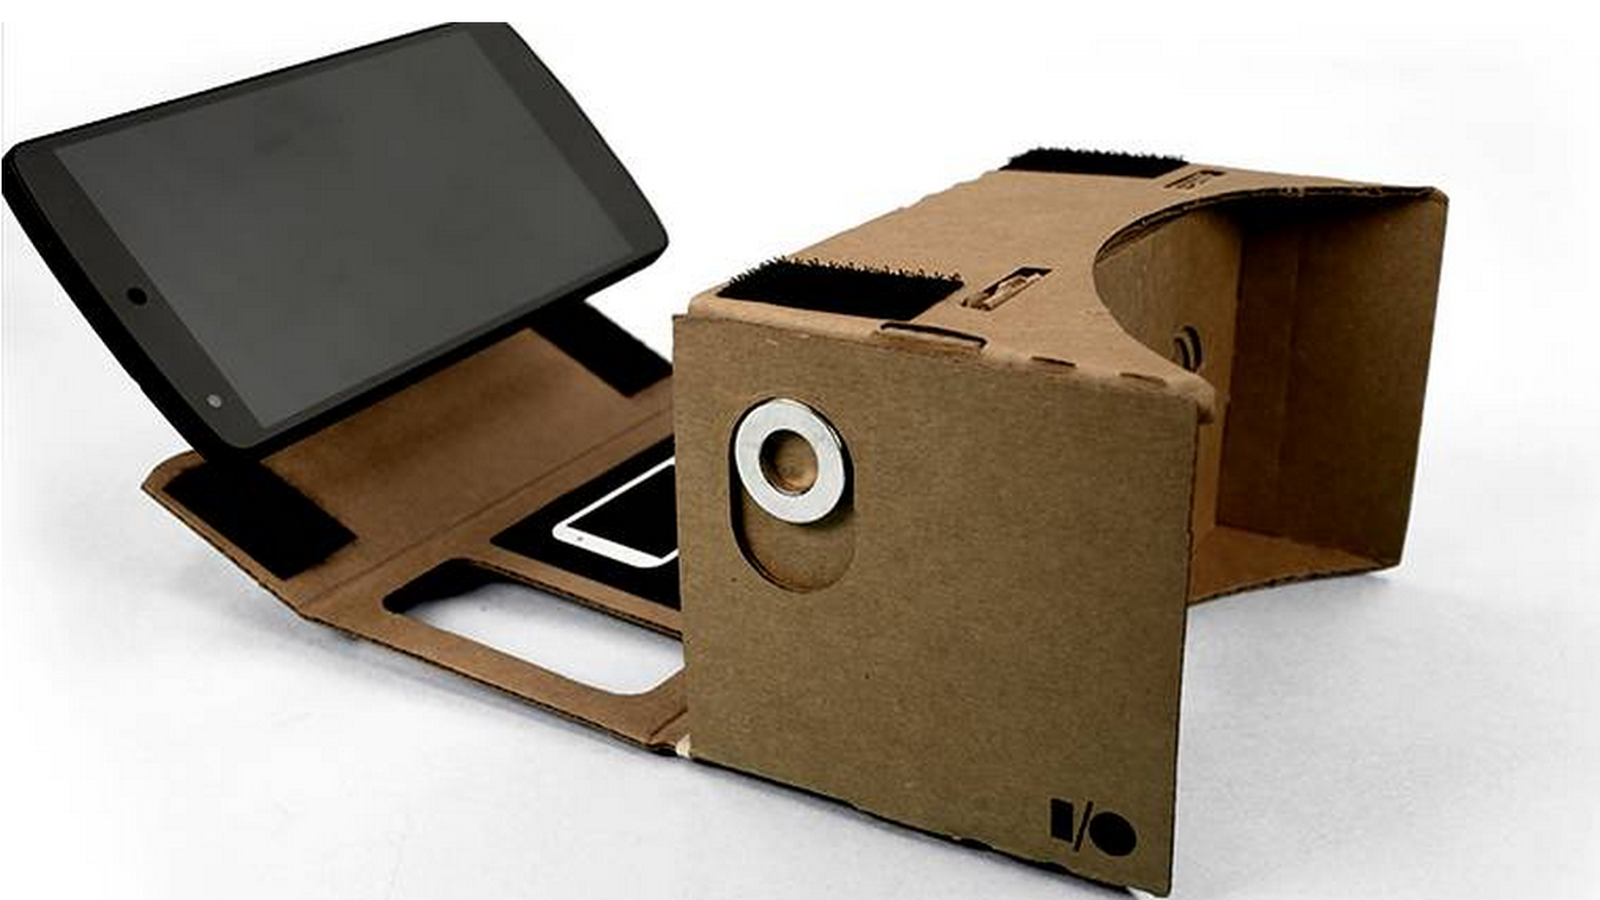 http://www.theverge.com/  Google Carboard